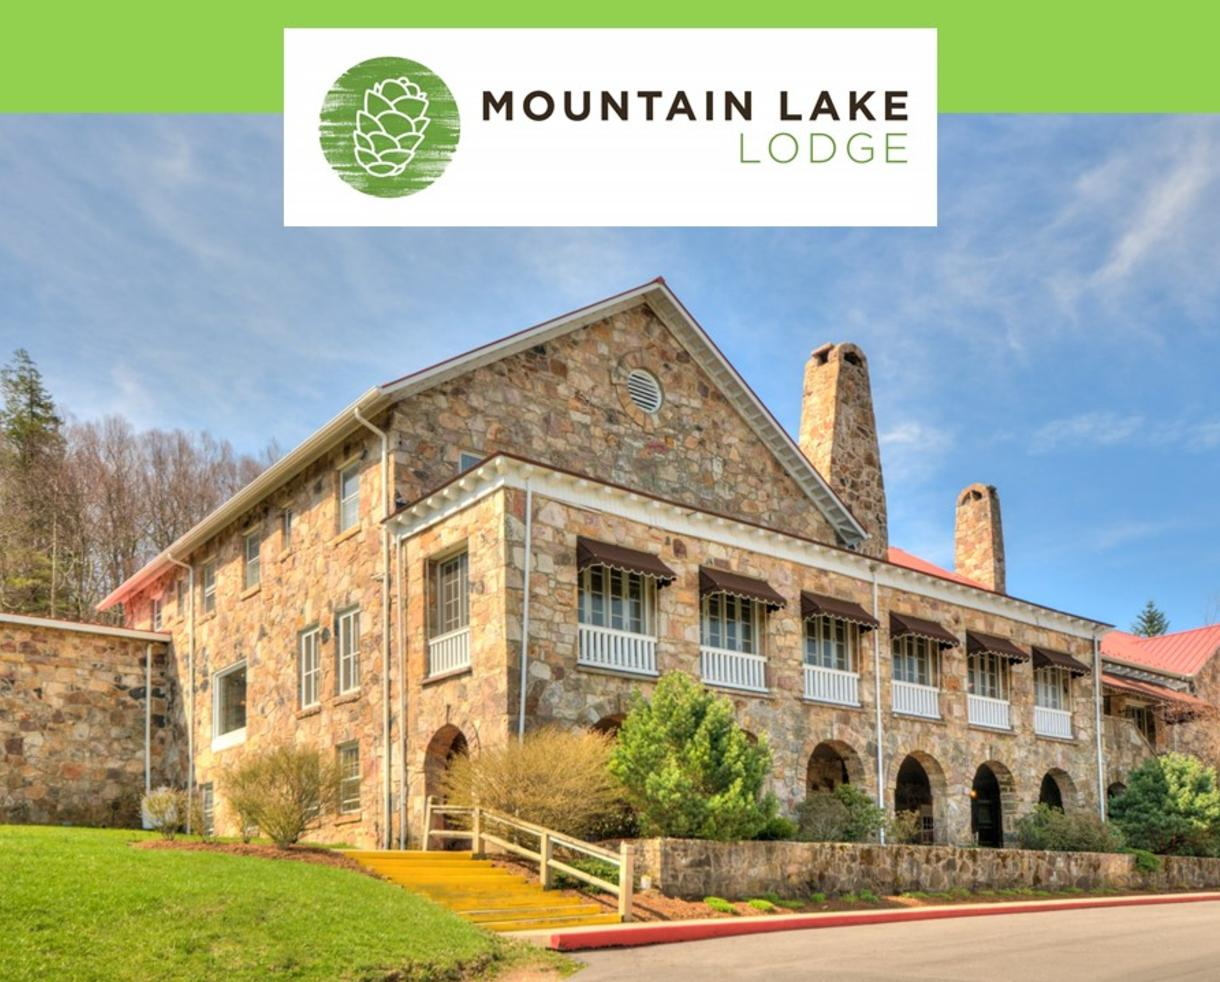 $549 for 3-Night Getaway at Mountain Lake Lodge – Where Dirty Dancing was Filmed! Includes Daily Breakfast, Daily $50 Dining Credit and $100 Recreation Credit - Pembroke, VA ($933 Value – 42% Off)